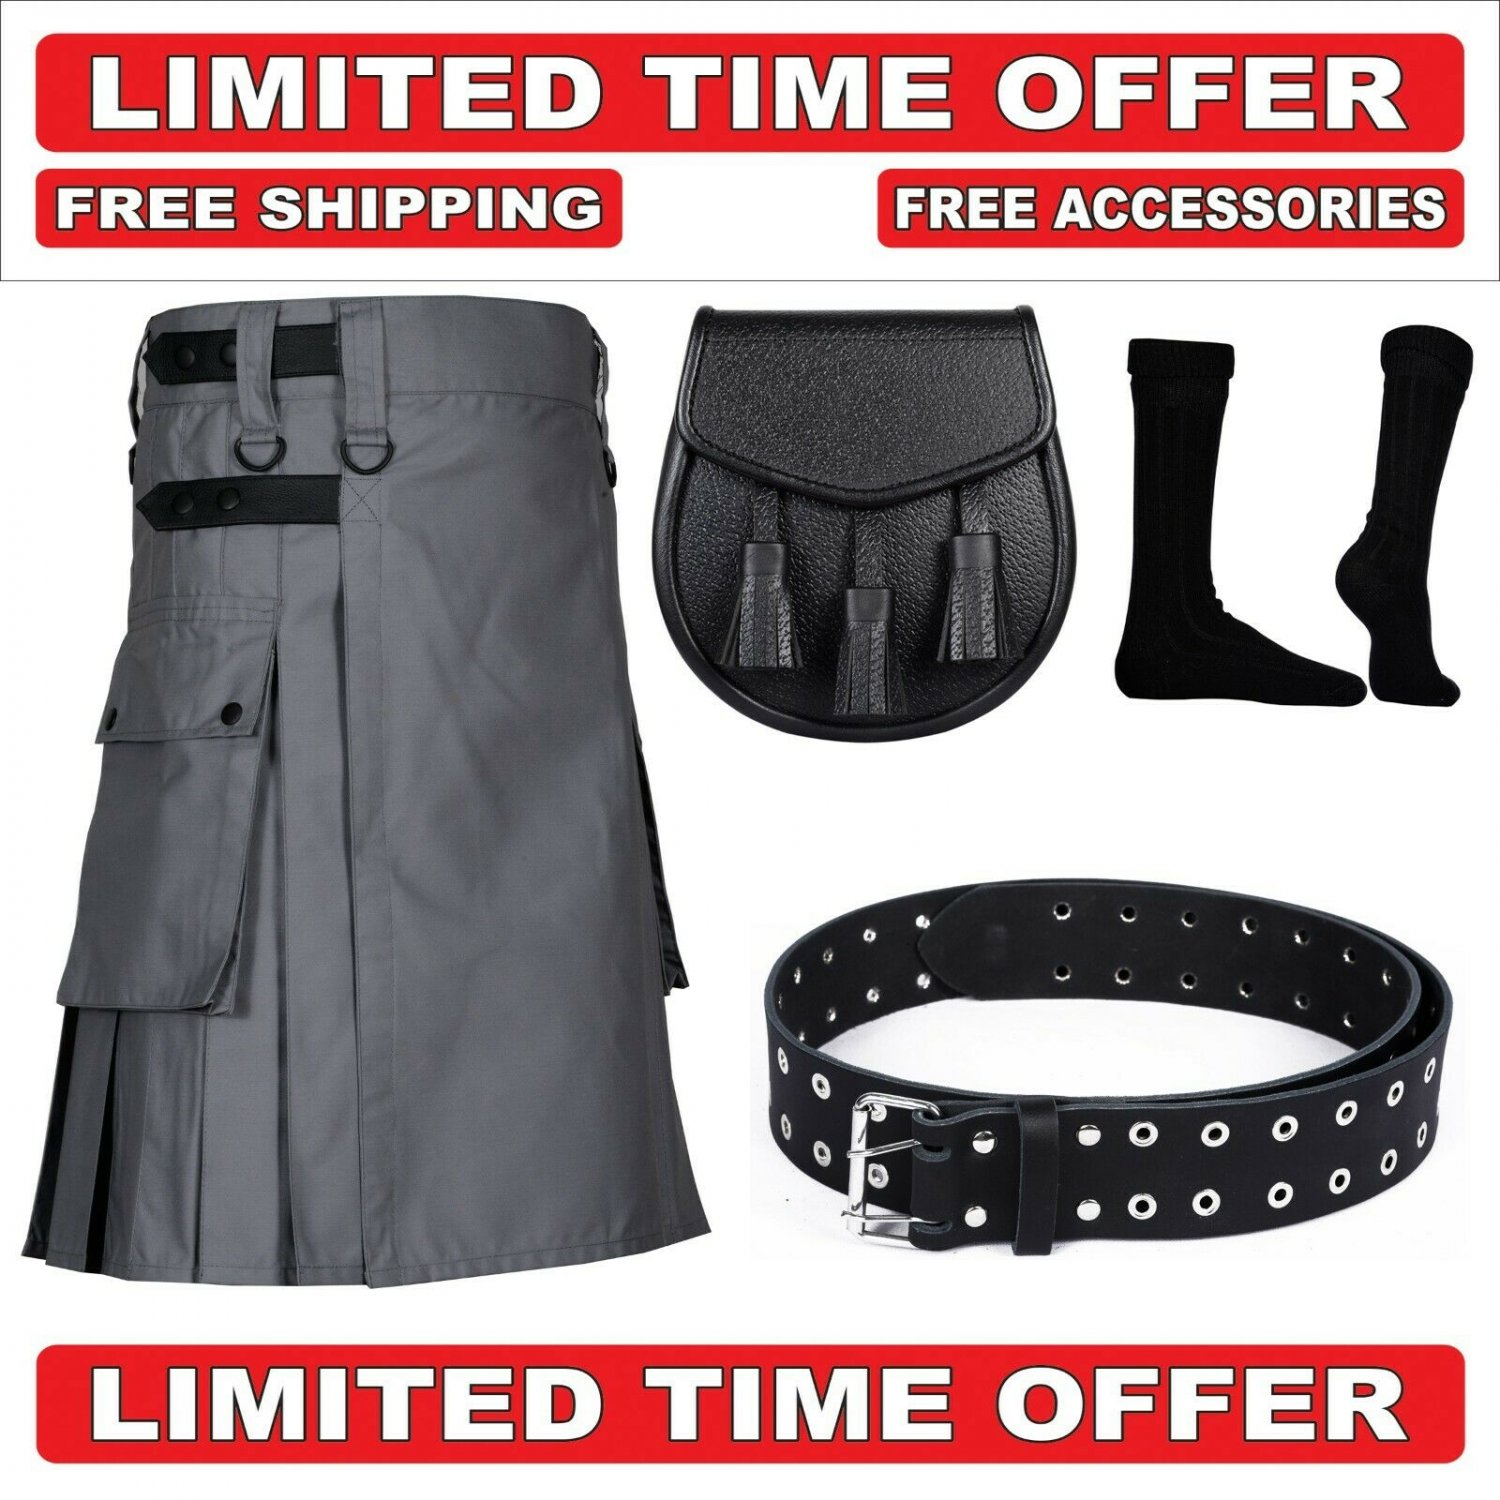 38 size grey Men's Cotton Utility Scottish Kilt With Free Accessories and Free Shipping